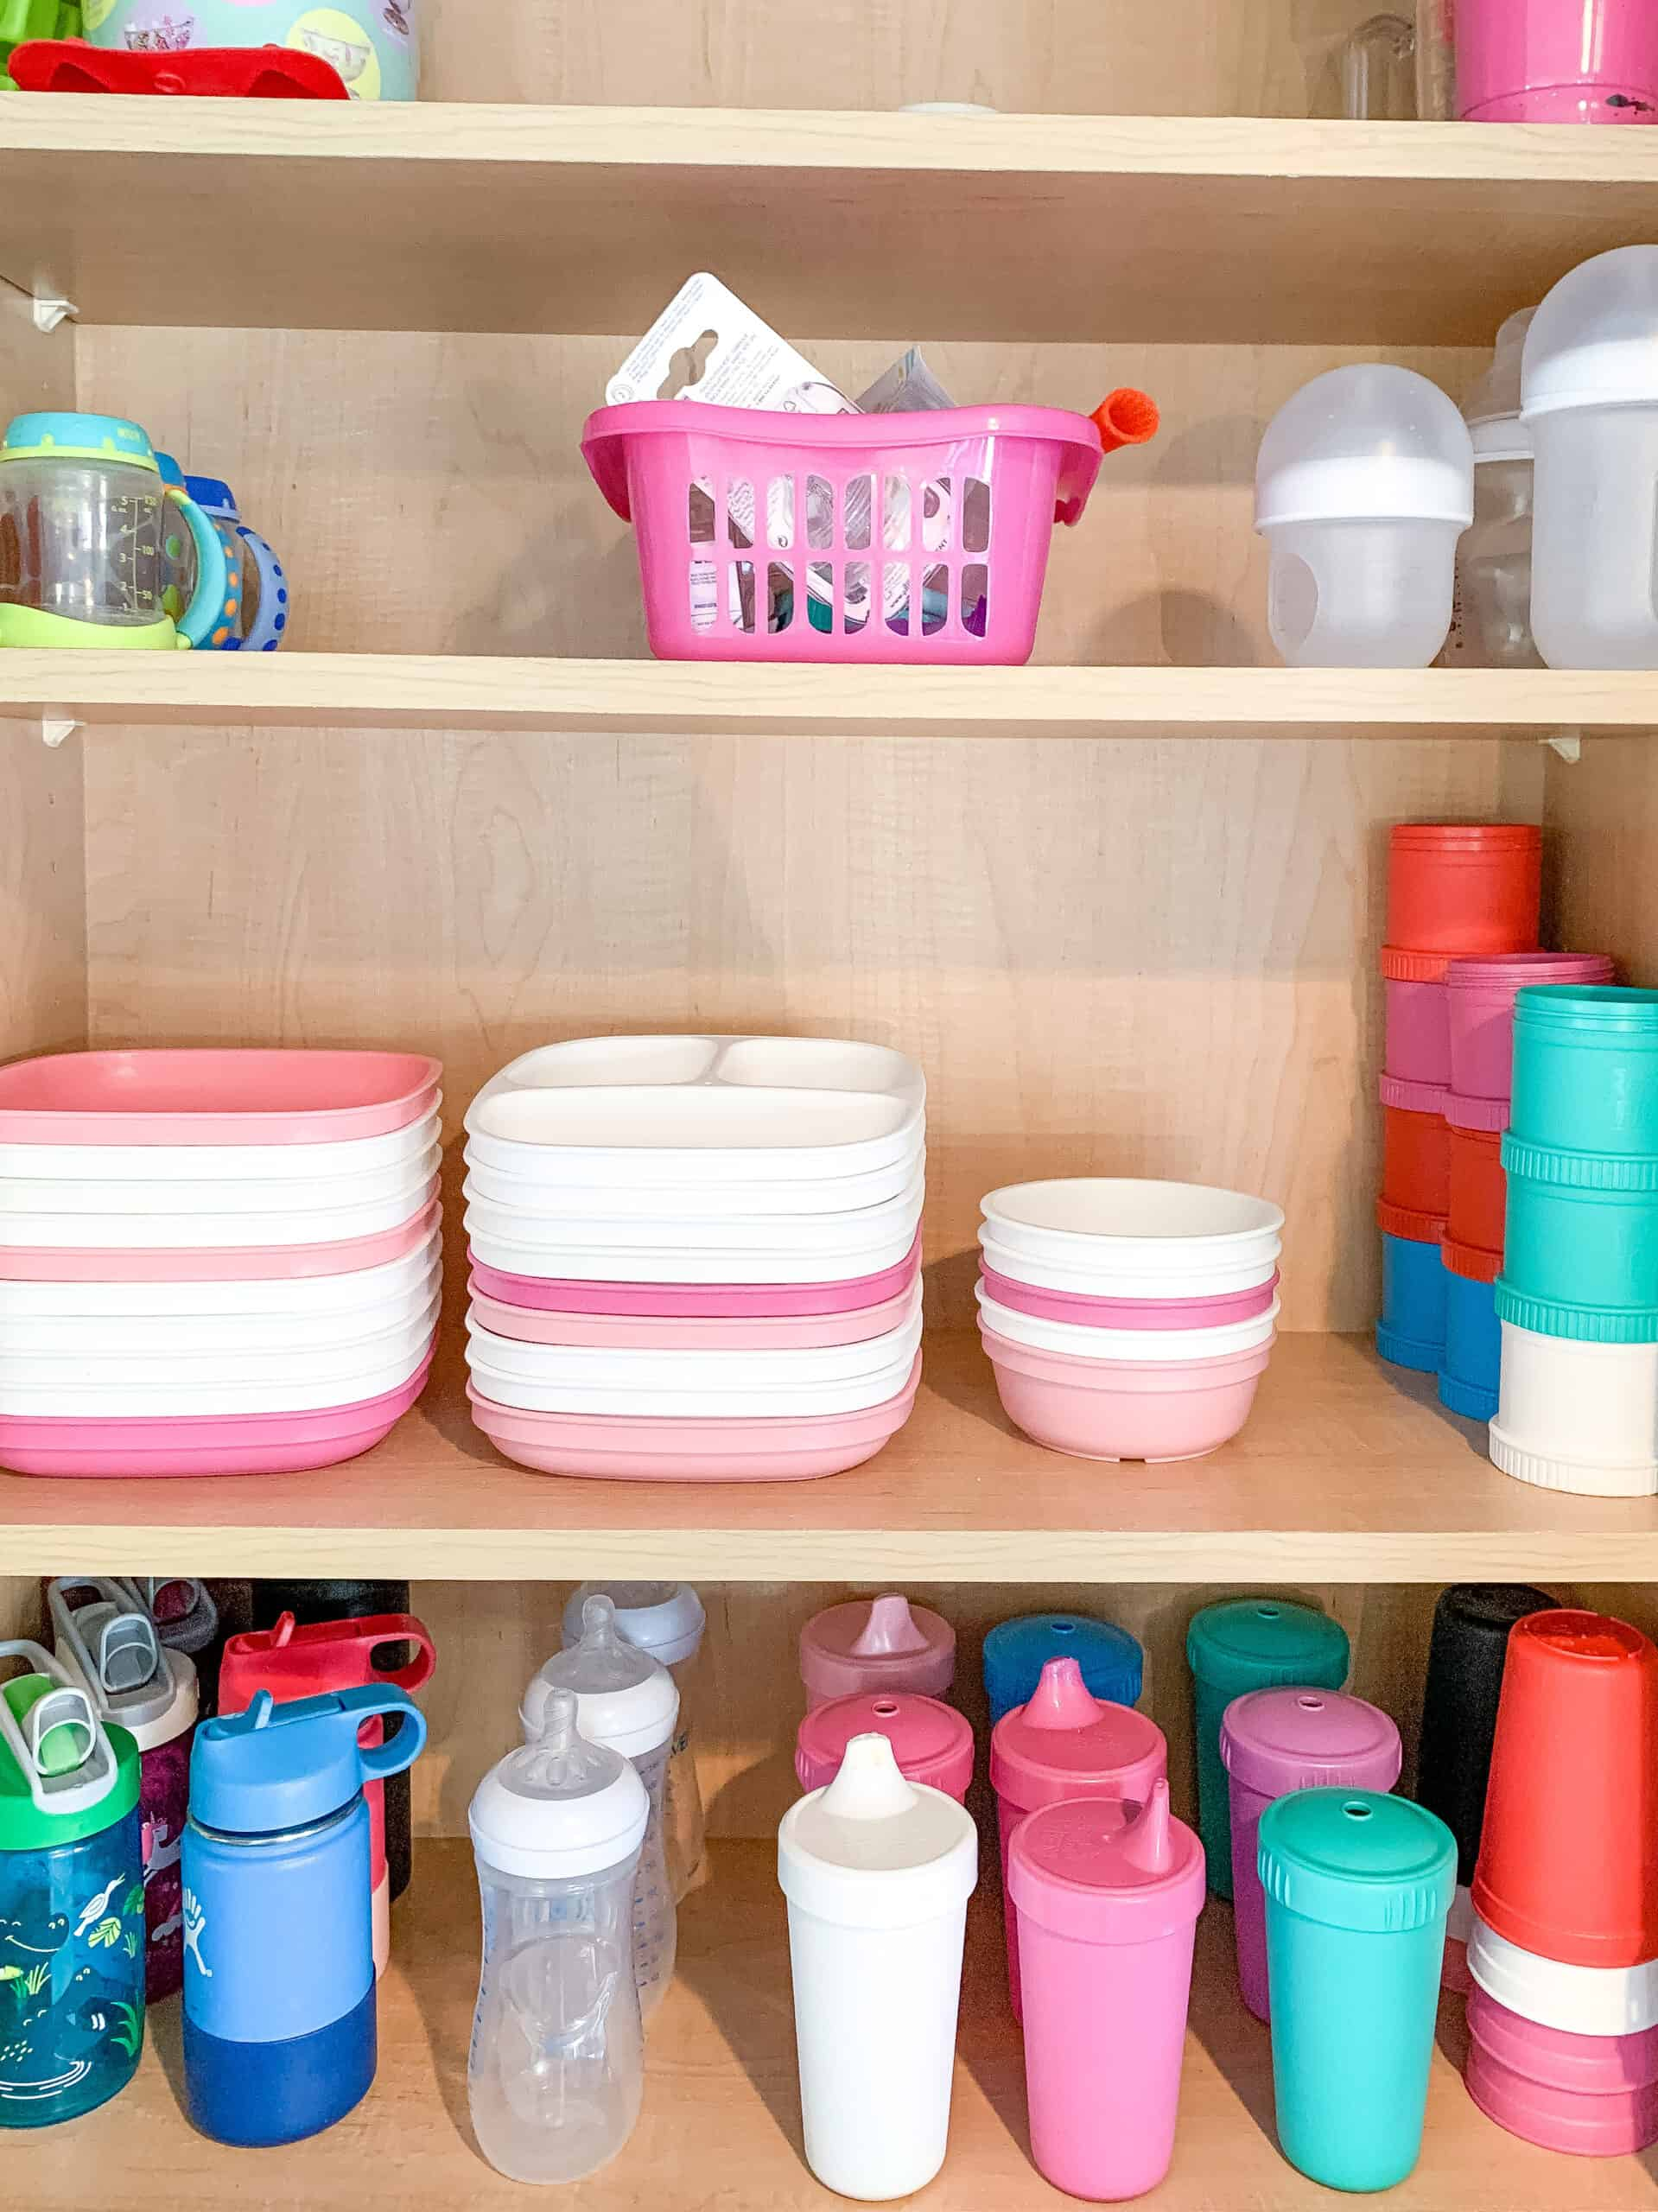 cupboard with replay recycled cups and plates organized